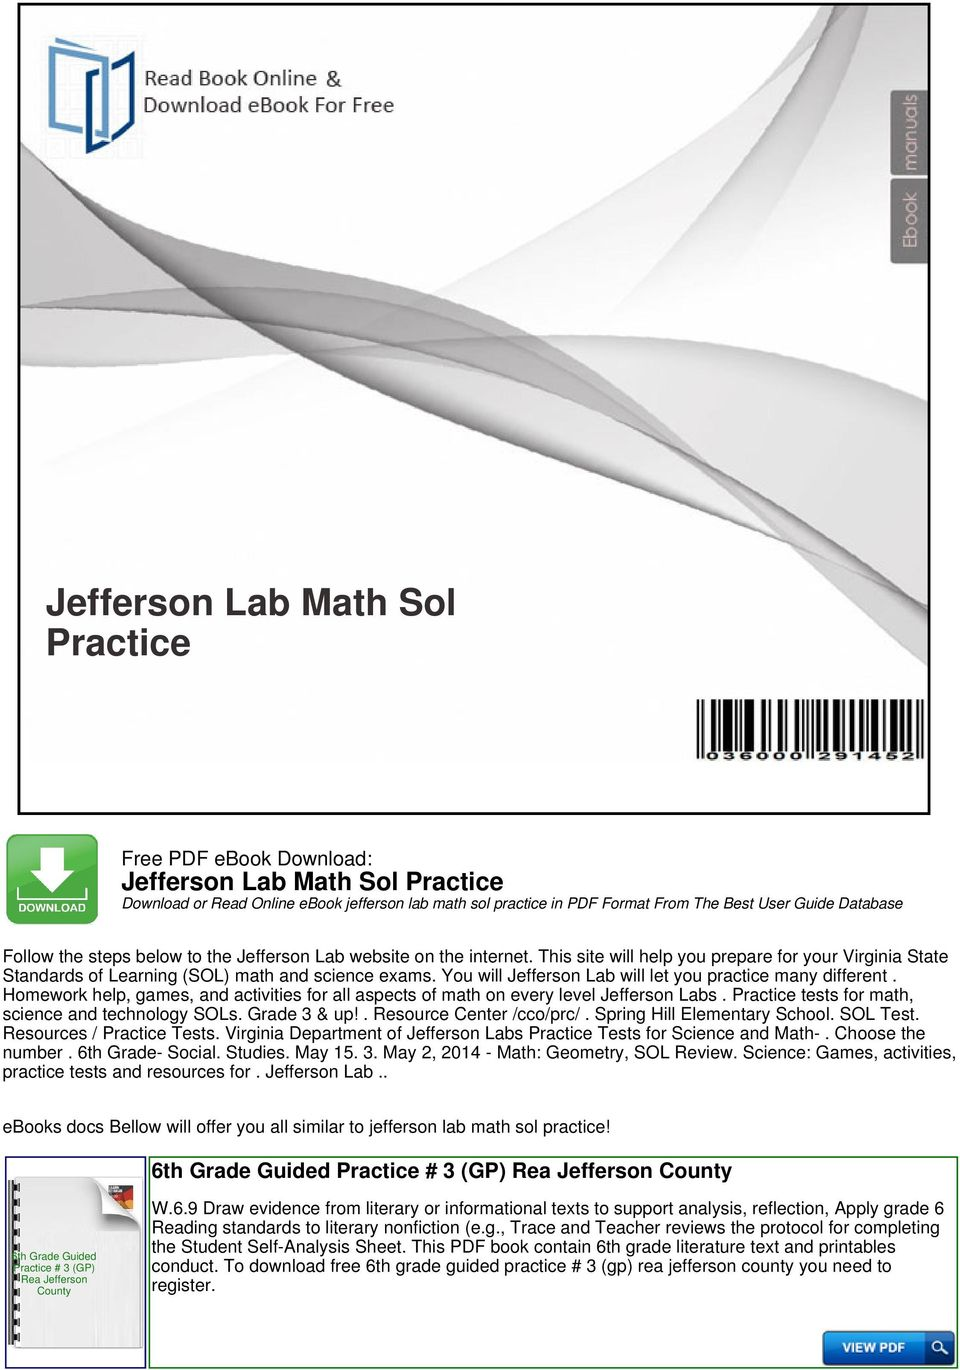 Homework help, games, and activities for all aspects of math on every level Labs. Practice tests for math, science and technology SOLs. Grade 3 & up!. Resource Center /cco/prc/.